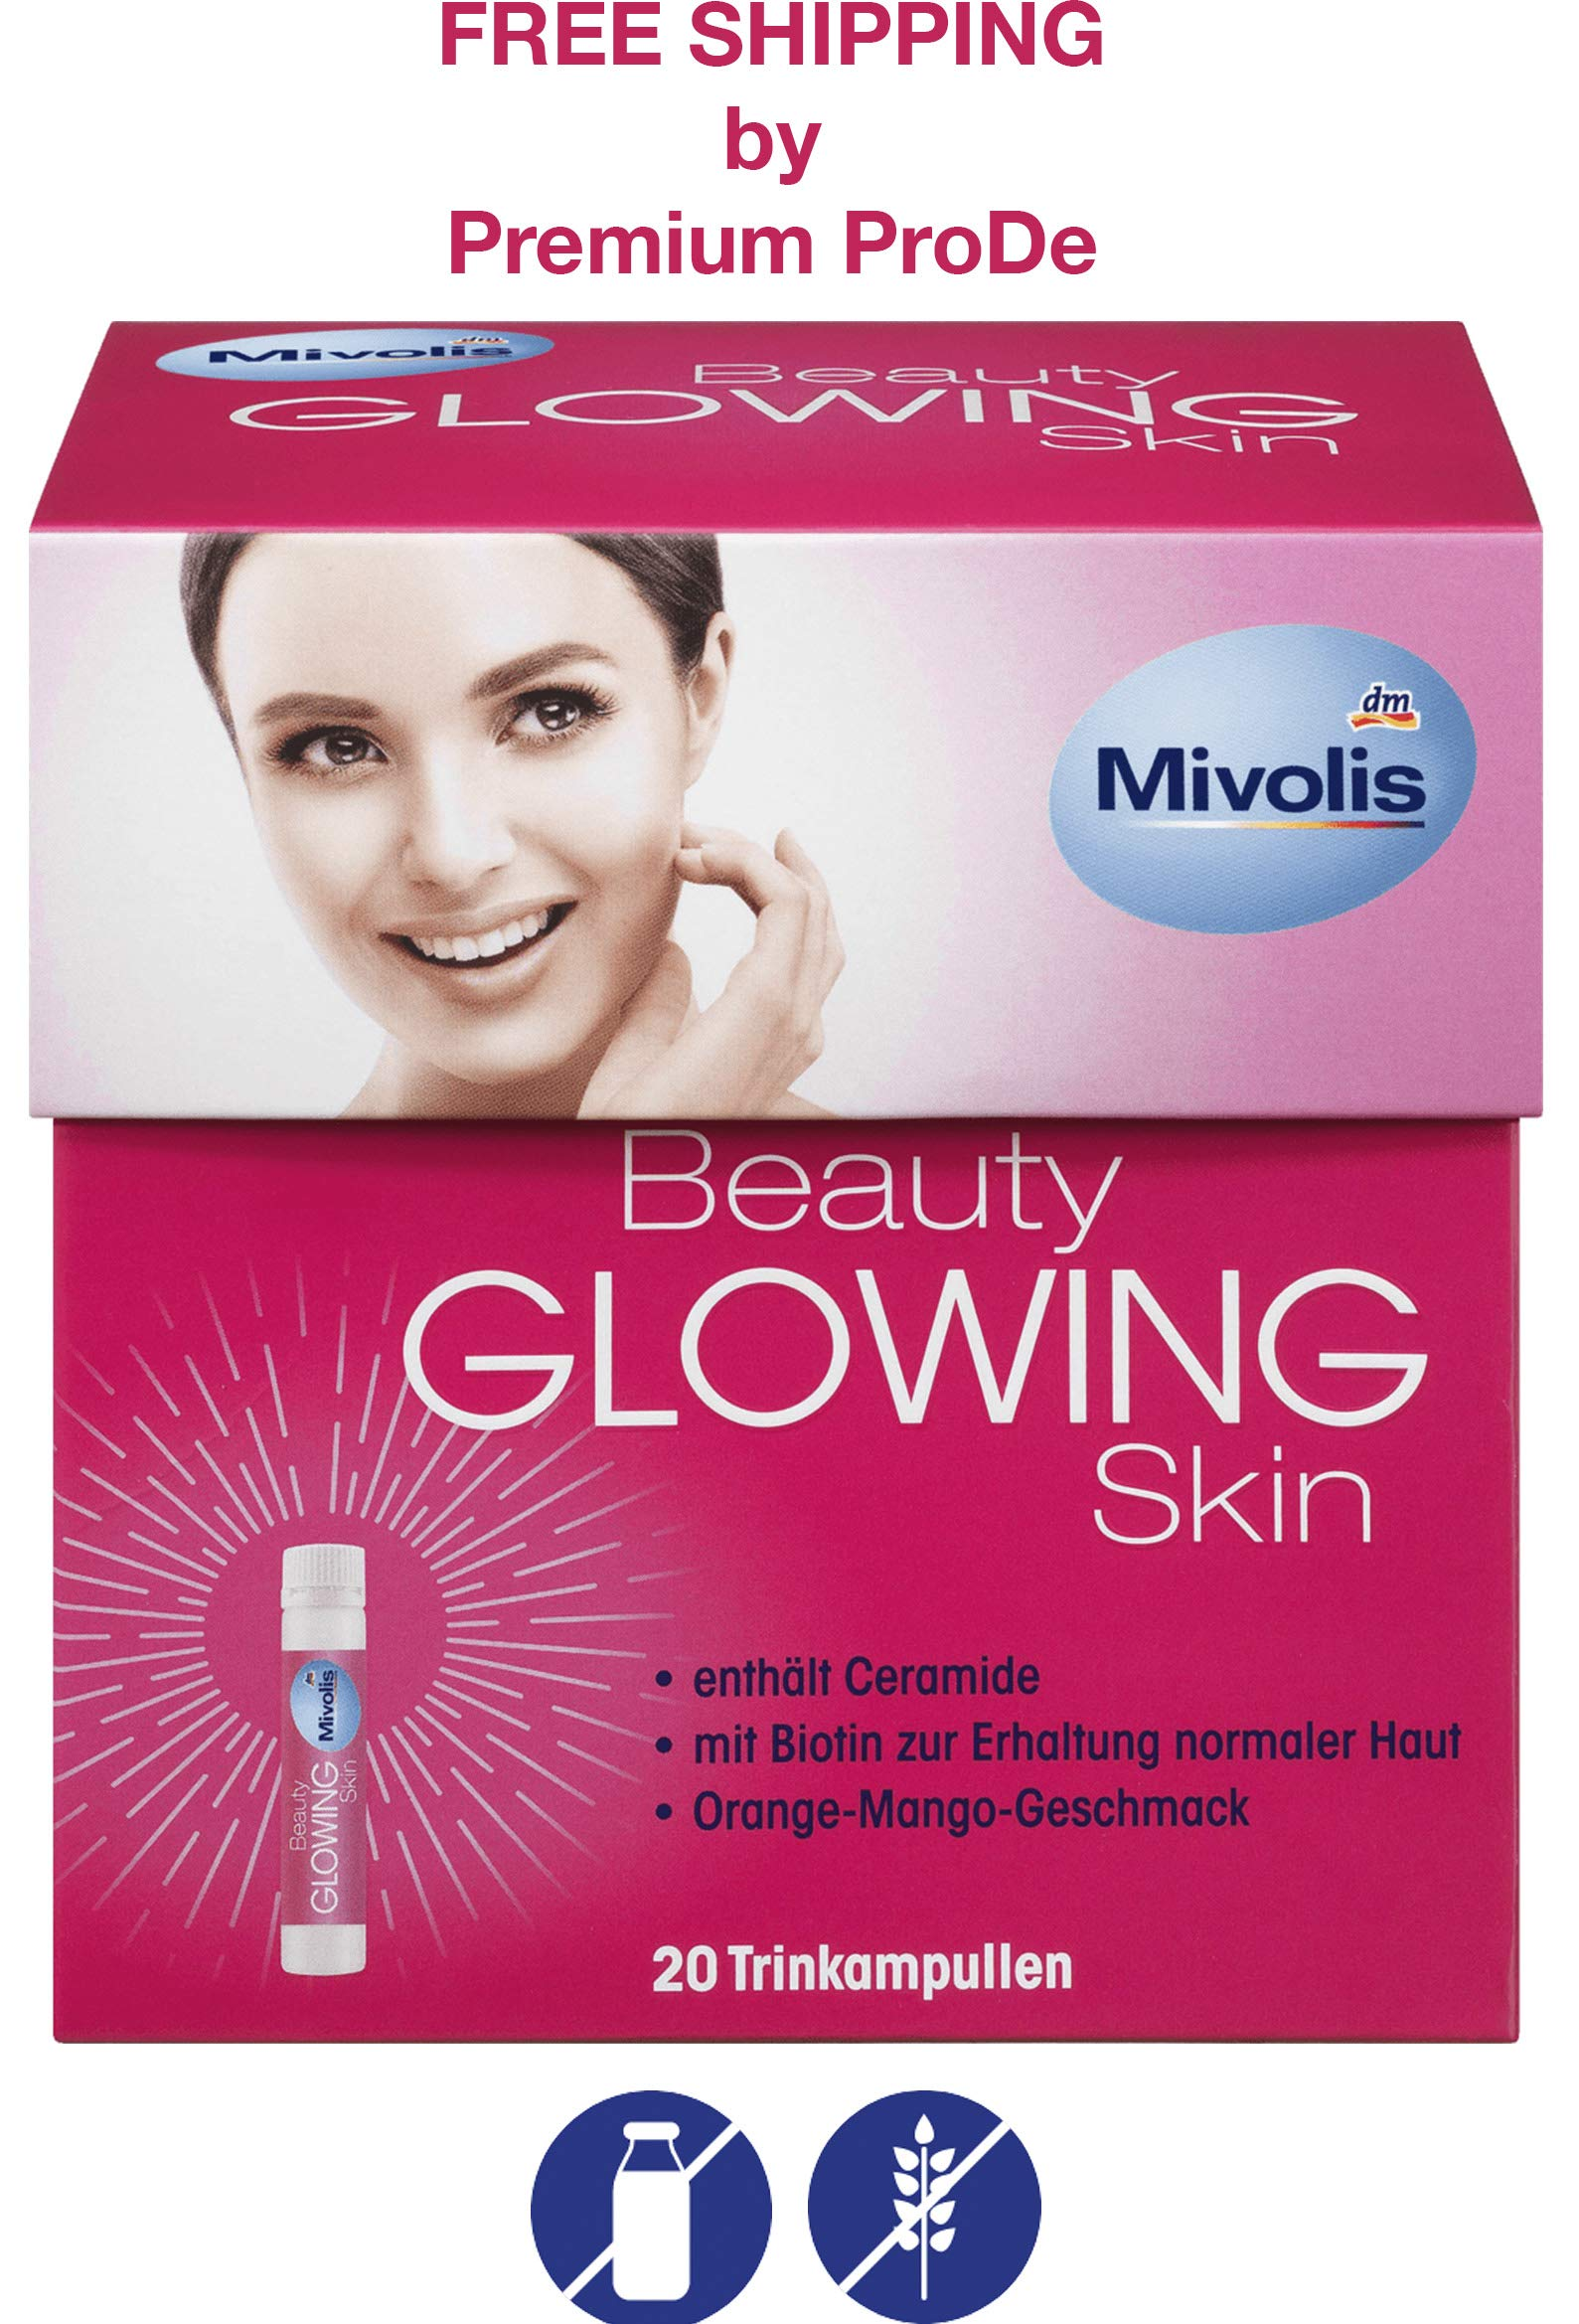 Beauty Glowing Skin Supplement Ceramides